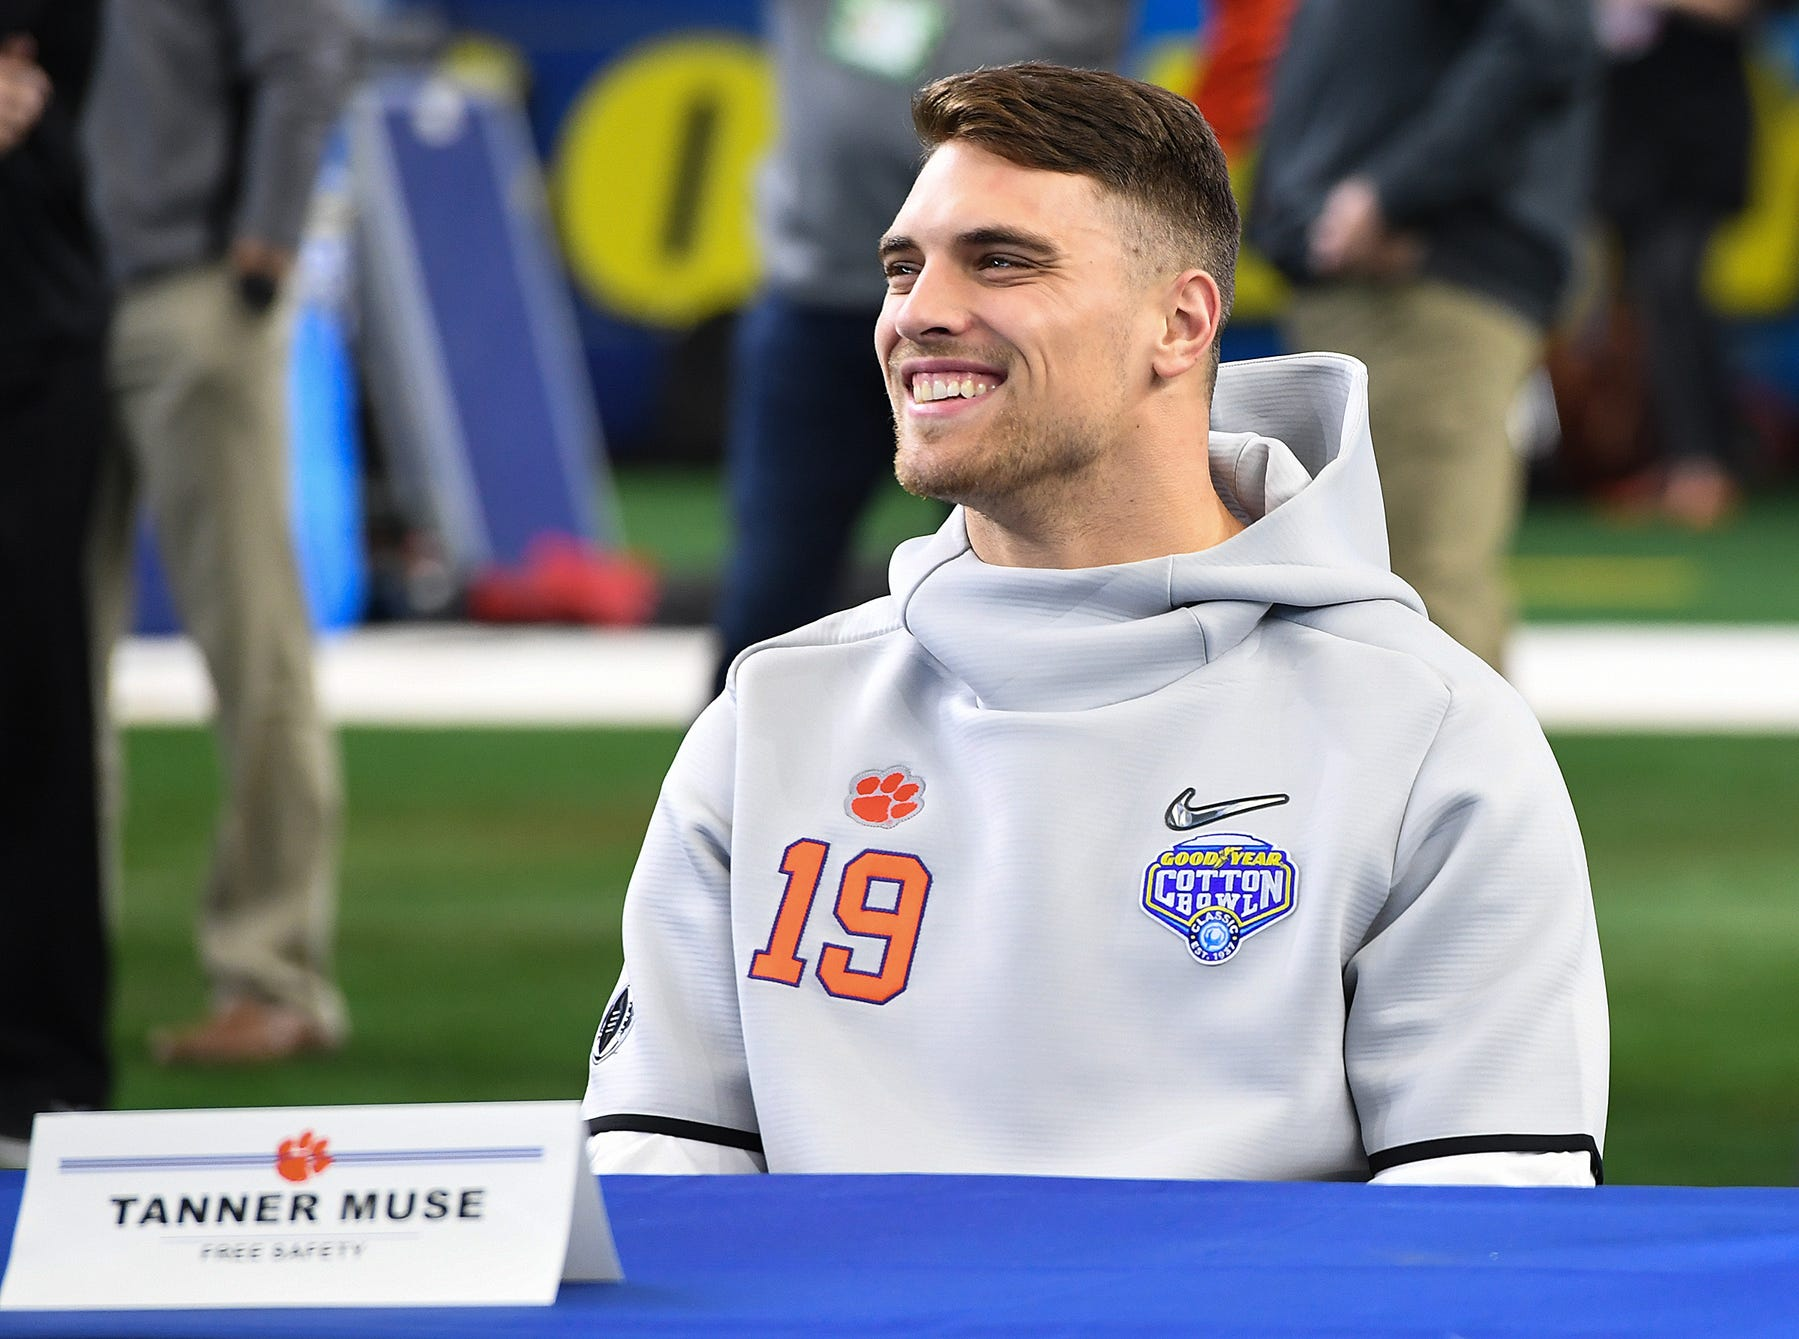 Clemson defensive back Tanner Muse during the Tigers Cotton Bowl media day at AT&T Stadium in Arlington, TX Thursday, December 27, 2018.